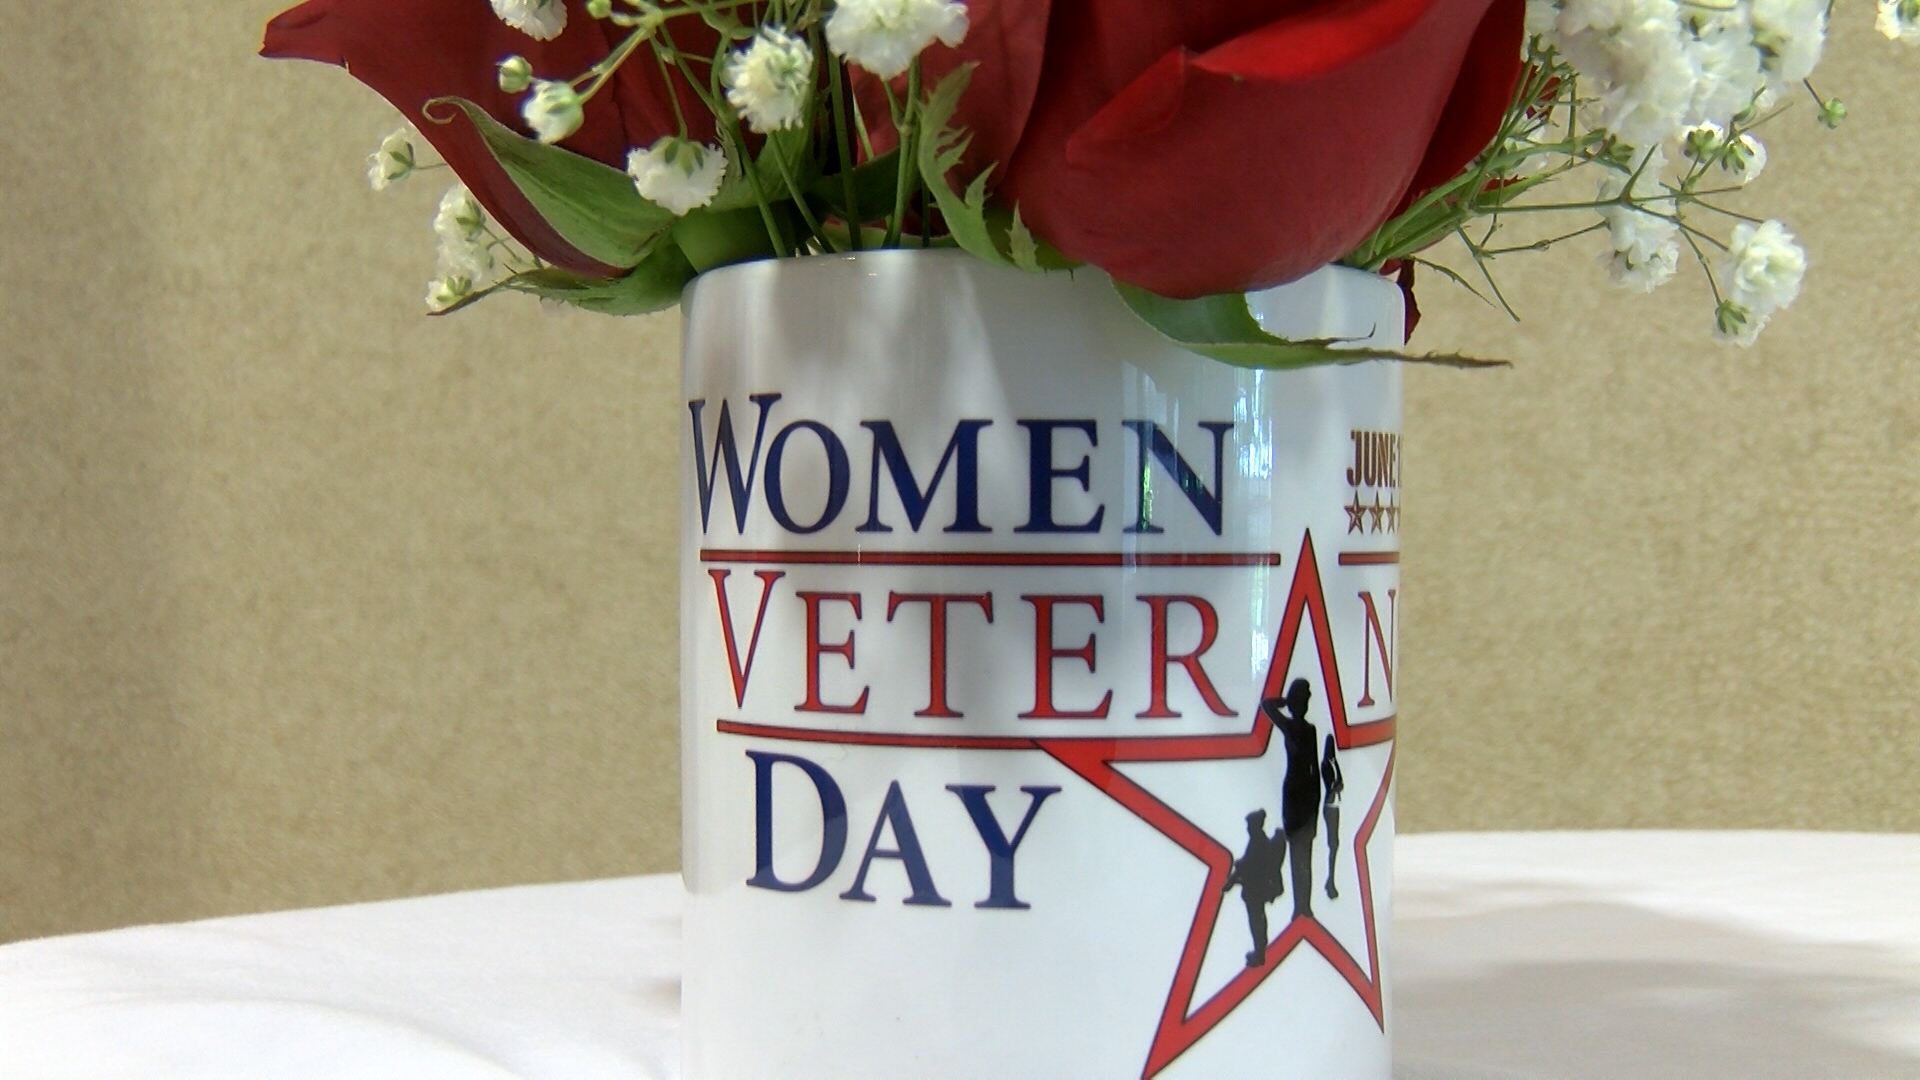 WOMEN VETERANS_1528853753196.jpg.jpg